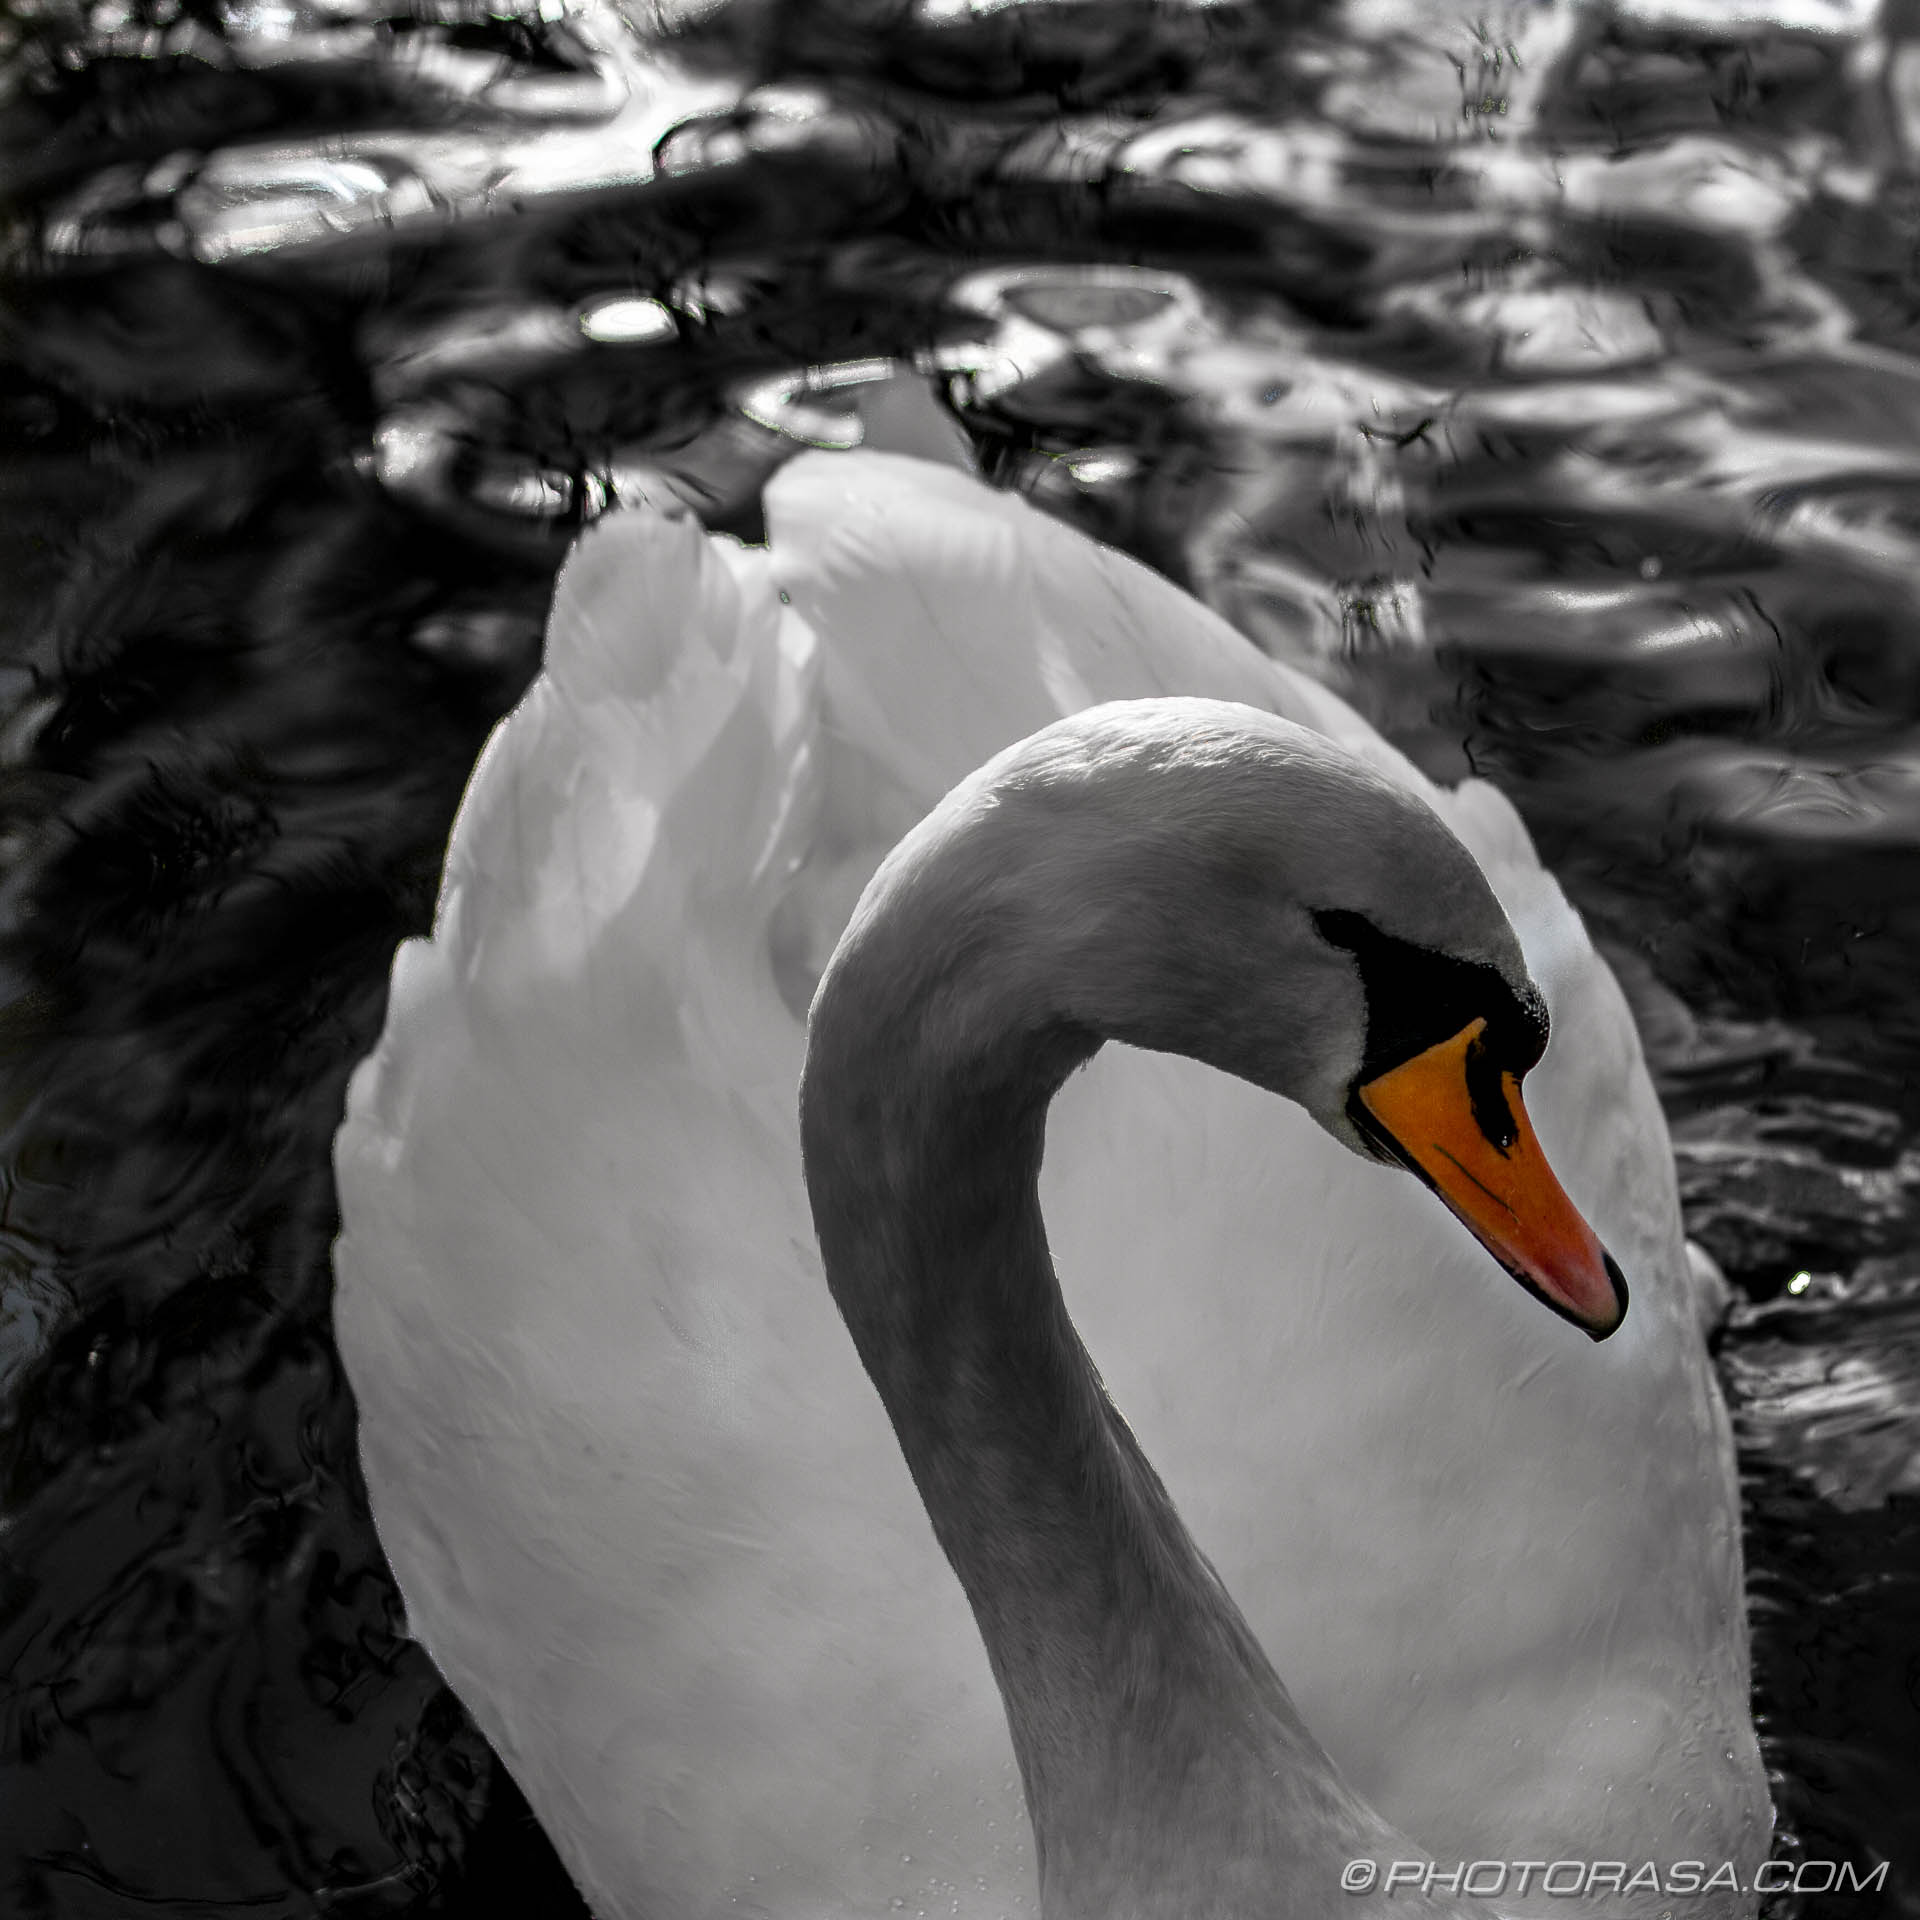 http://photorasa.com/animals/birds/art-swans/attachment/swan-gliding-forwards/